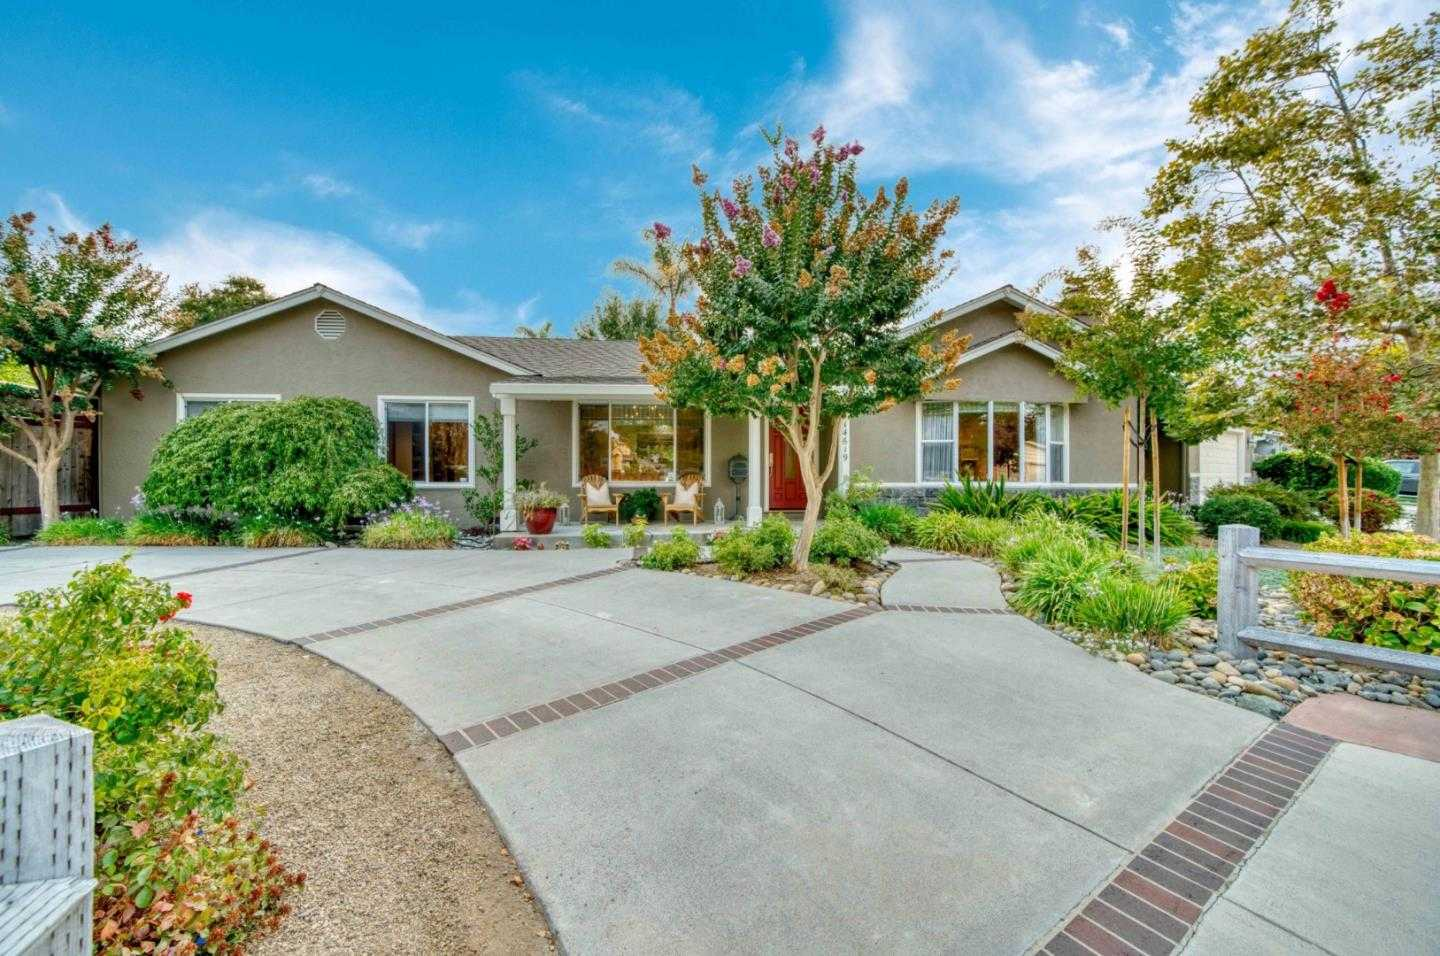 $2,099,888 - 4Br/3Ba -  for Sale in San Jose